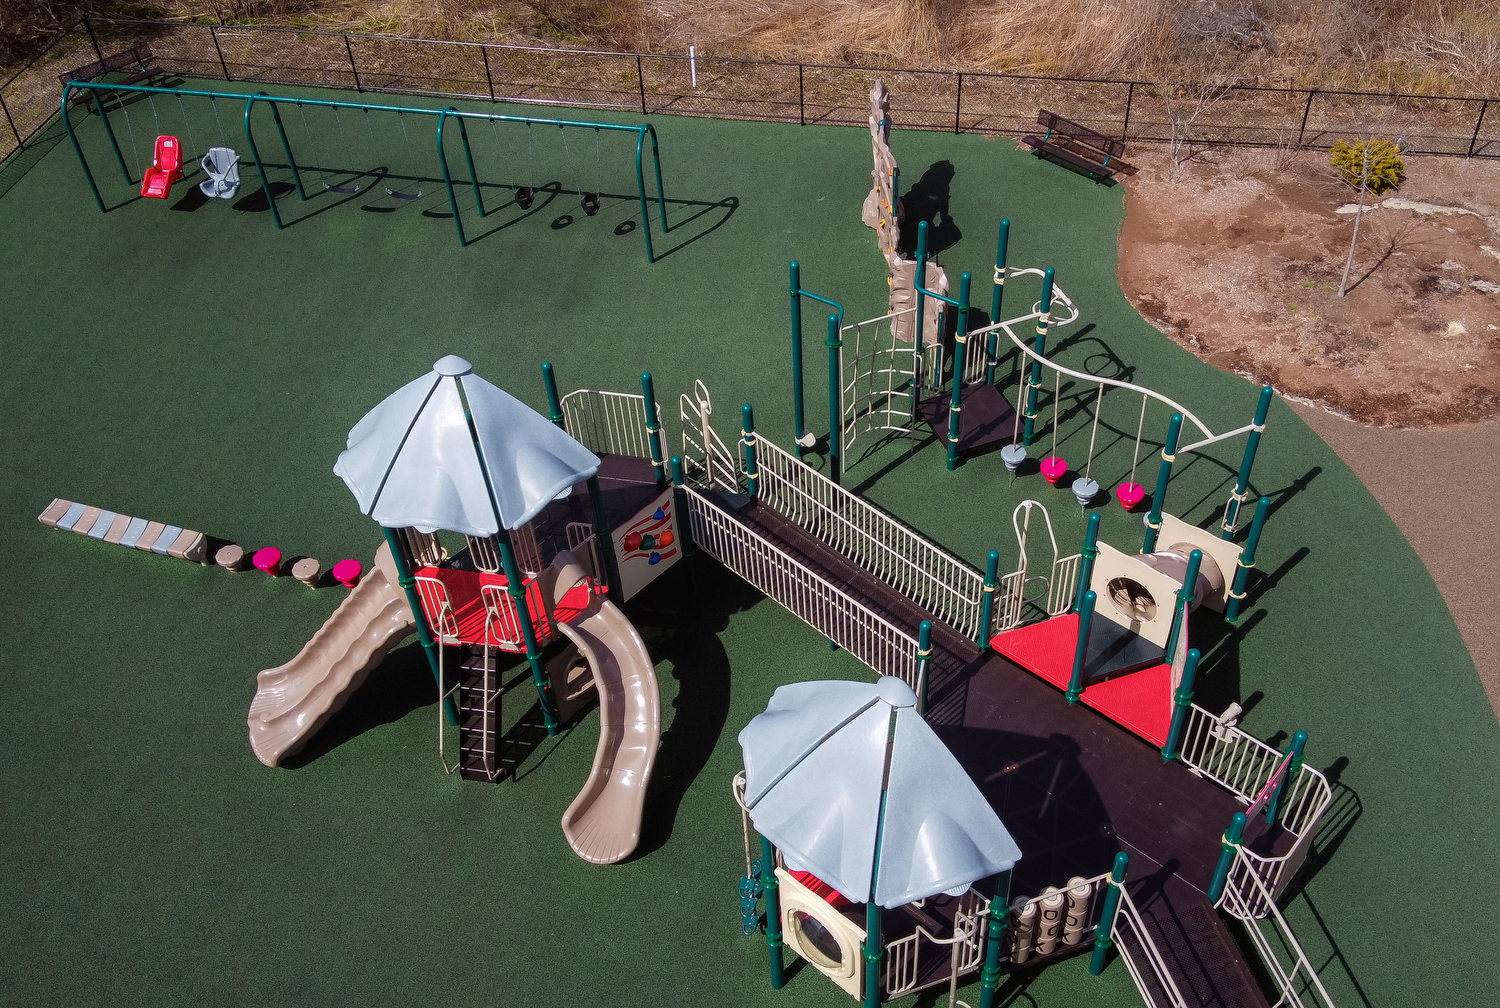 WEST BARNSTABLE - Luke's Love, a popular playground off of Route 149, was vacant on Friday, March 27, 2020 despite the sunny and warm spring weather.